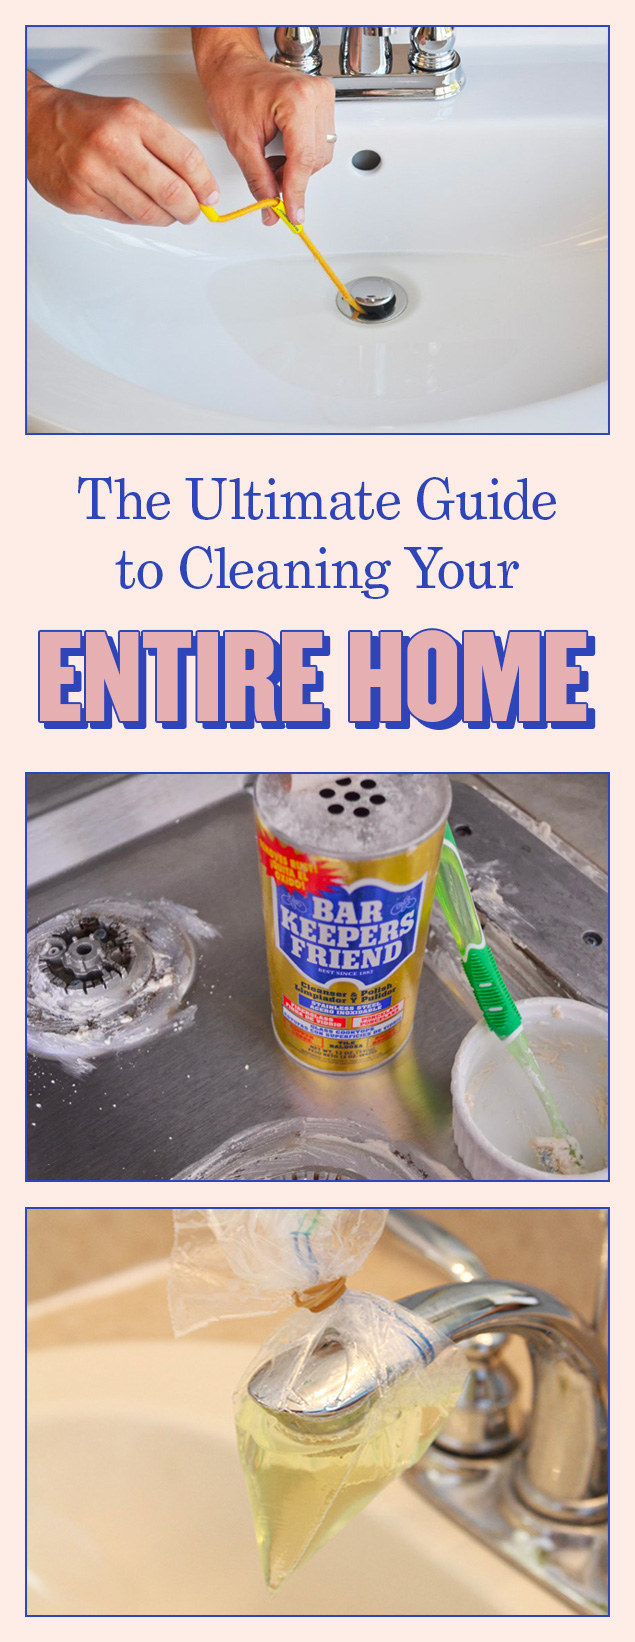 A variety of images showing different parts of your home being cleaned